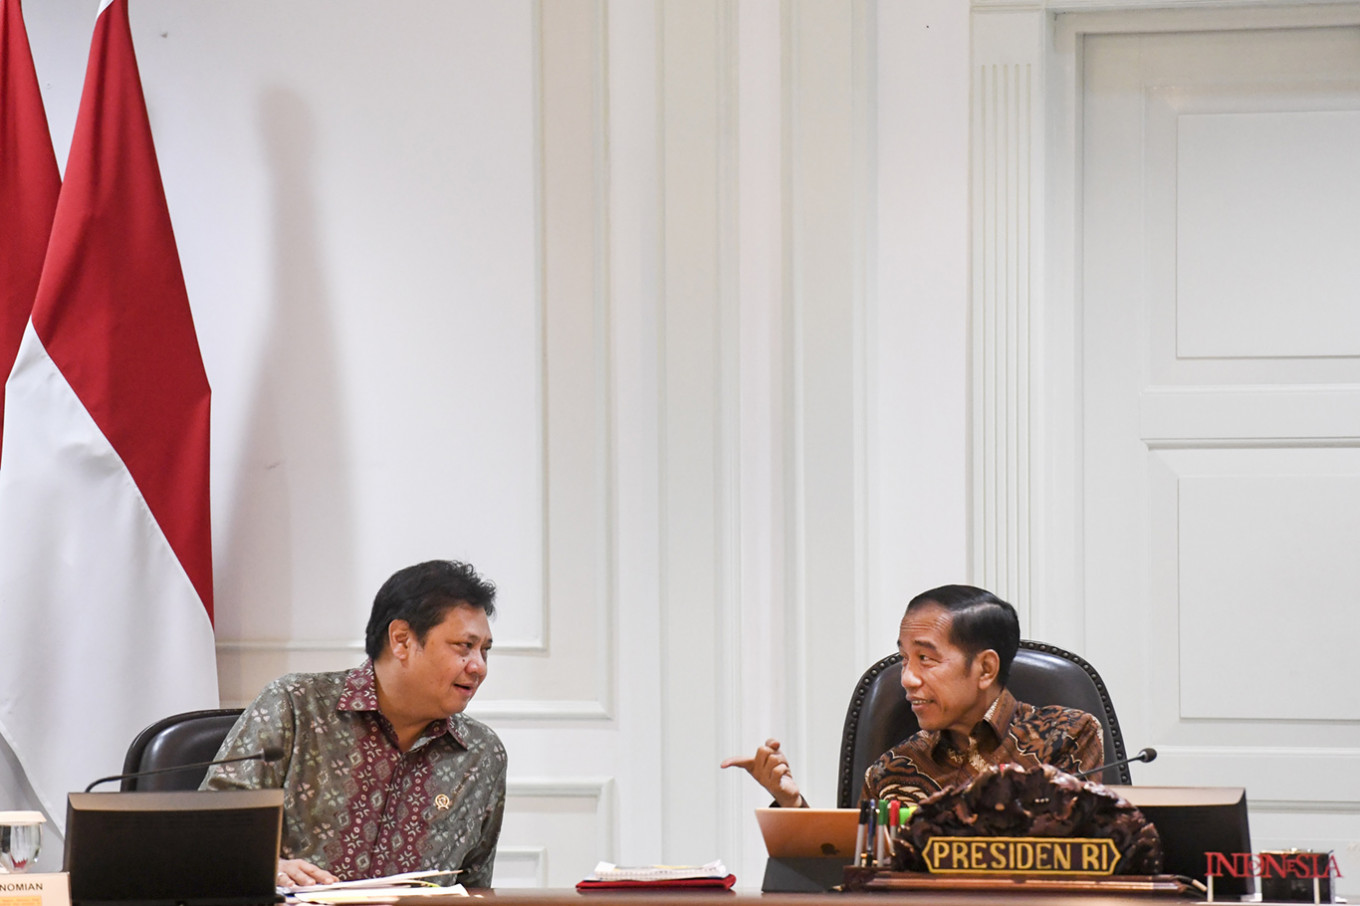 Growing pains: US tariff policy overshadows planned Jokowi visit